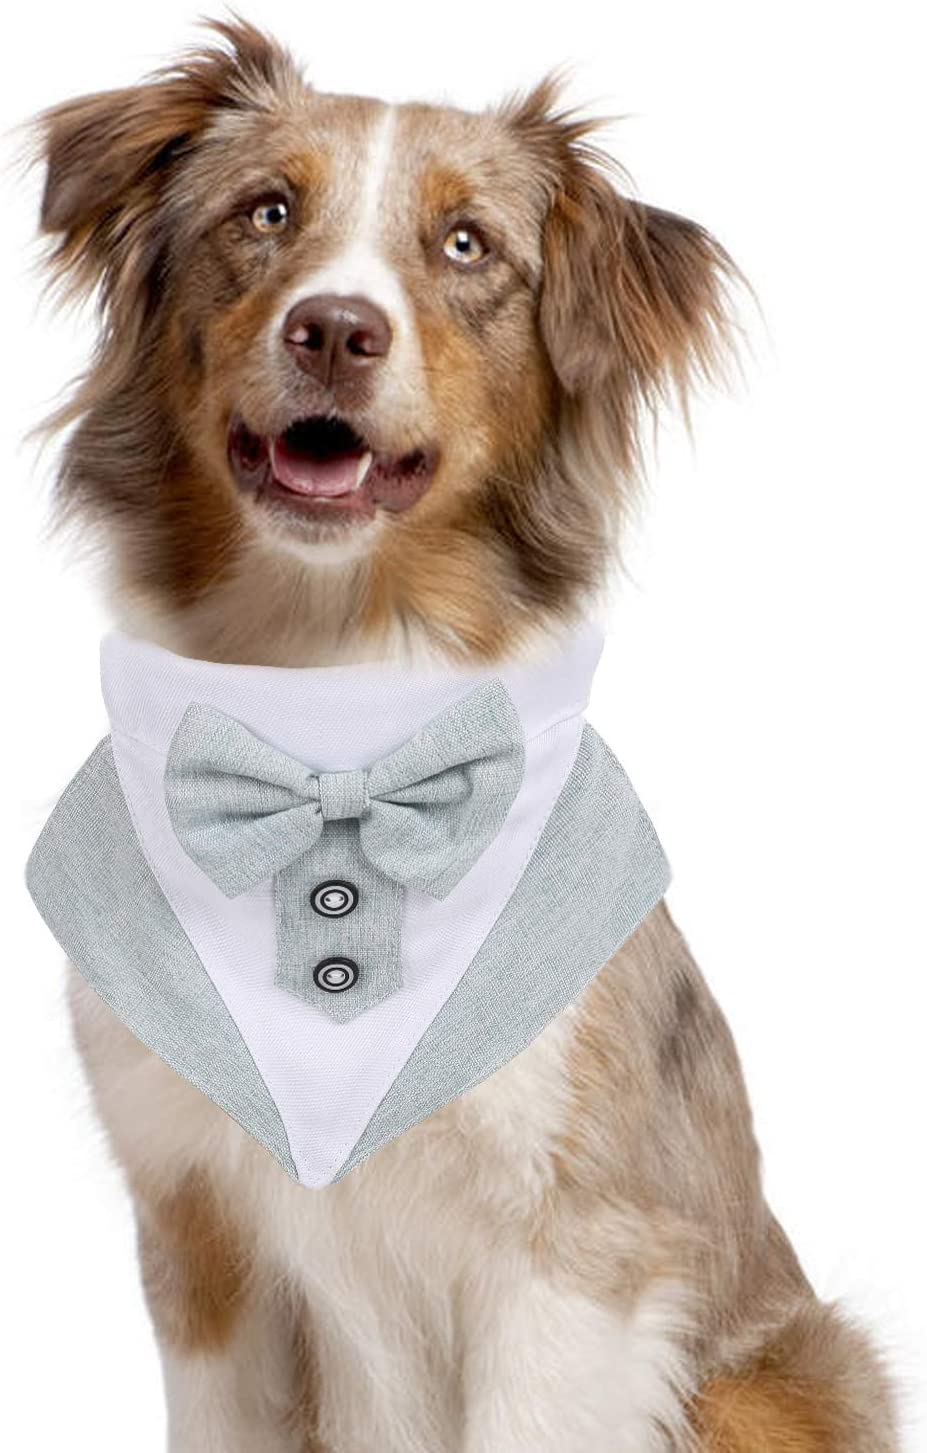 QBLEEV Dog Tuxedo Bandana Collar with Adjustable Buckle for Small Medium Large Dogs,Pet Preppy Neckwear Elegant Bow Tie Collar,Dog Formal Wedding Birthday Party Dress-up Cosplay Costume Accessories